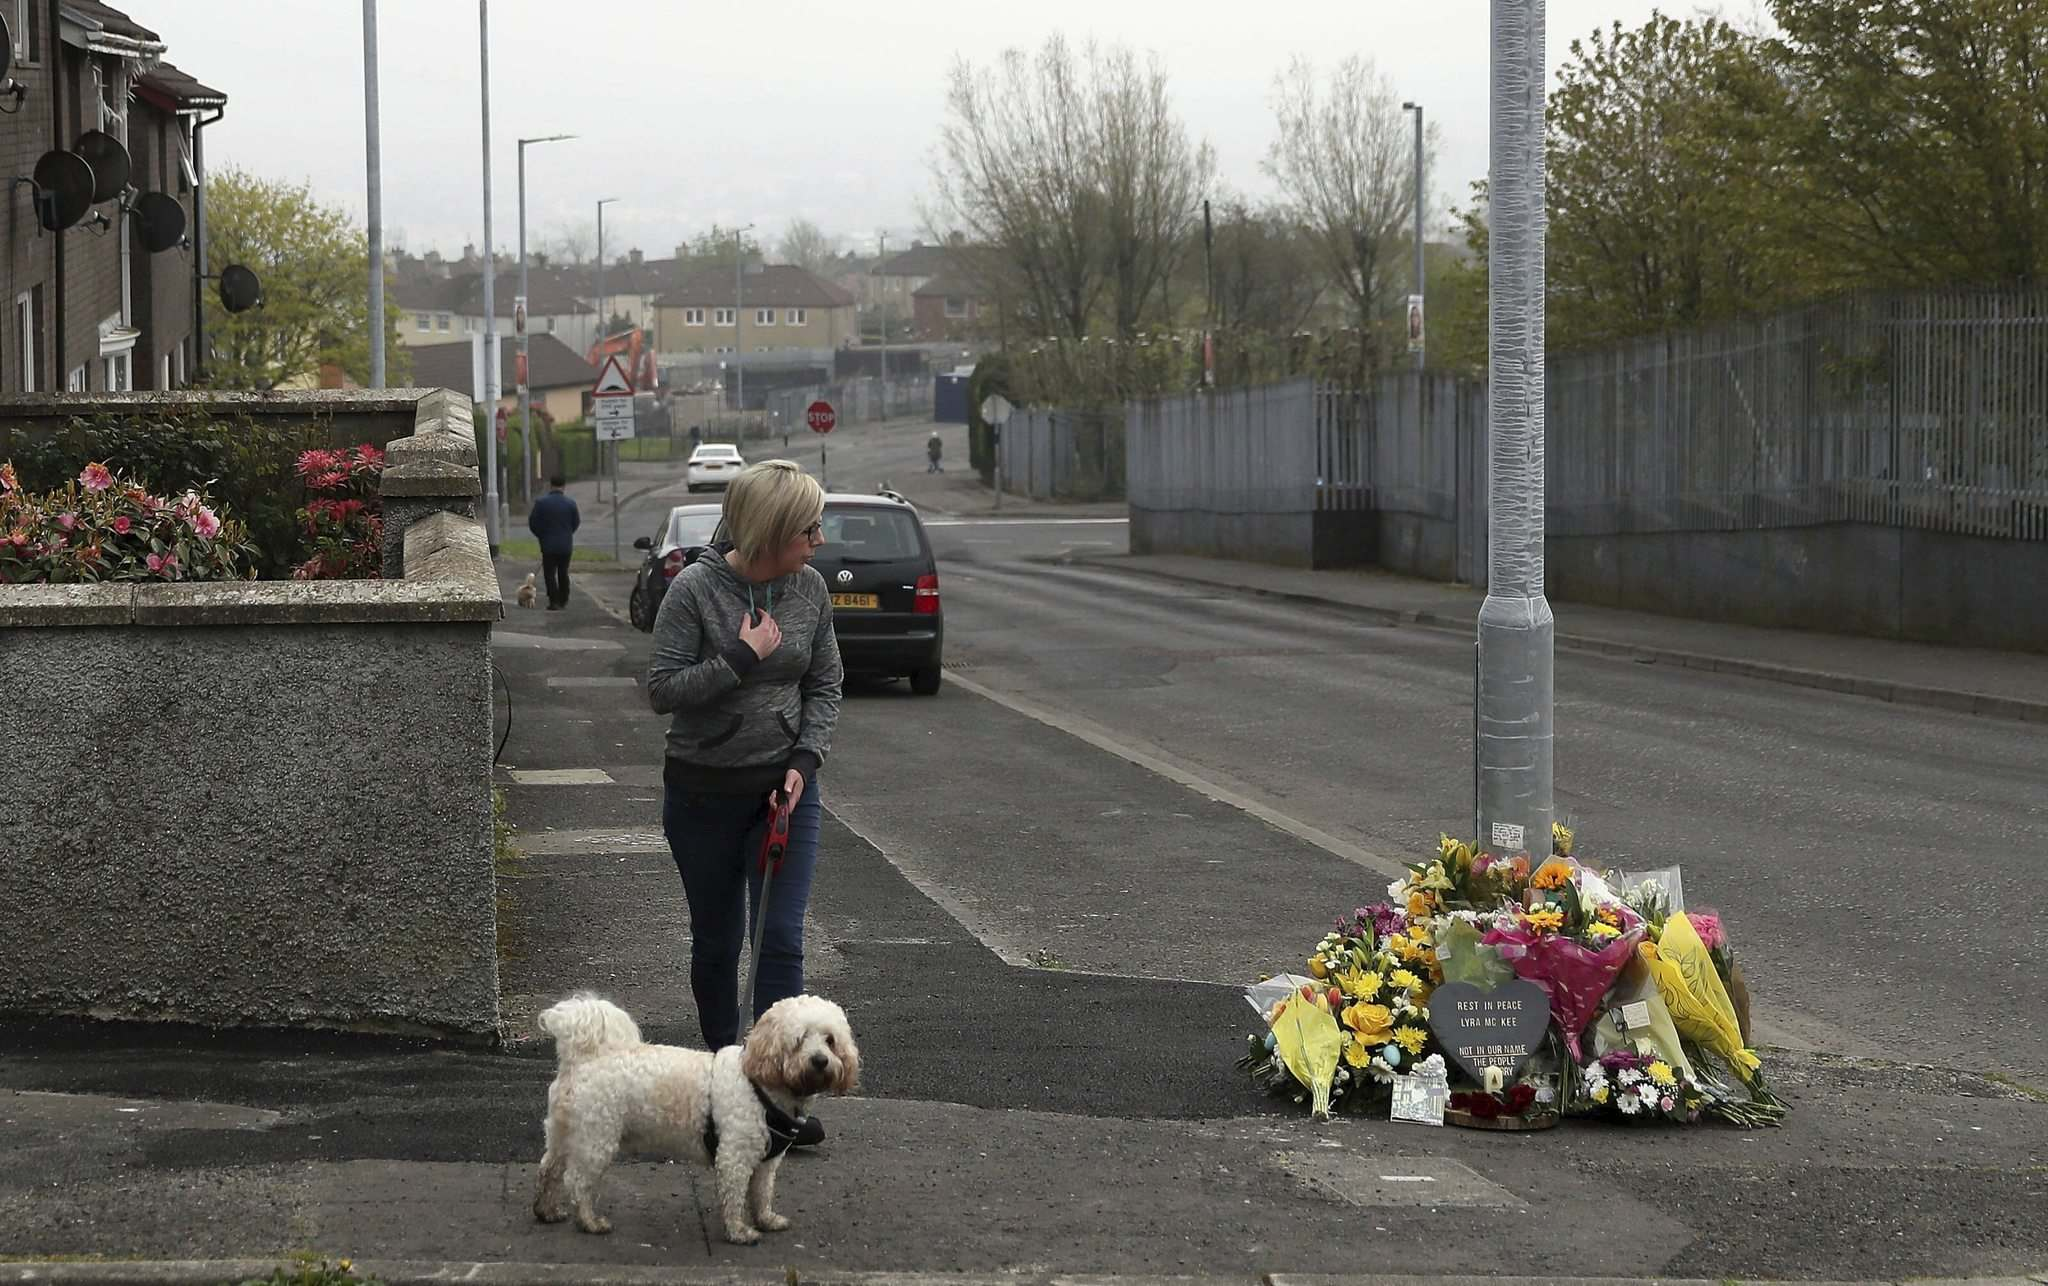 Brian Lawless / PA / The Associated Press Files</p><p>A woman stops to pay her respects at the scene where 29-year old journalist Lyra McKee was fatally shot while covering riots in Londonderry, Northern Ireland, on April 18.</p>